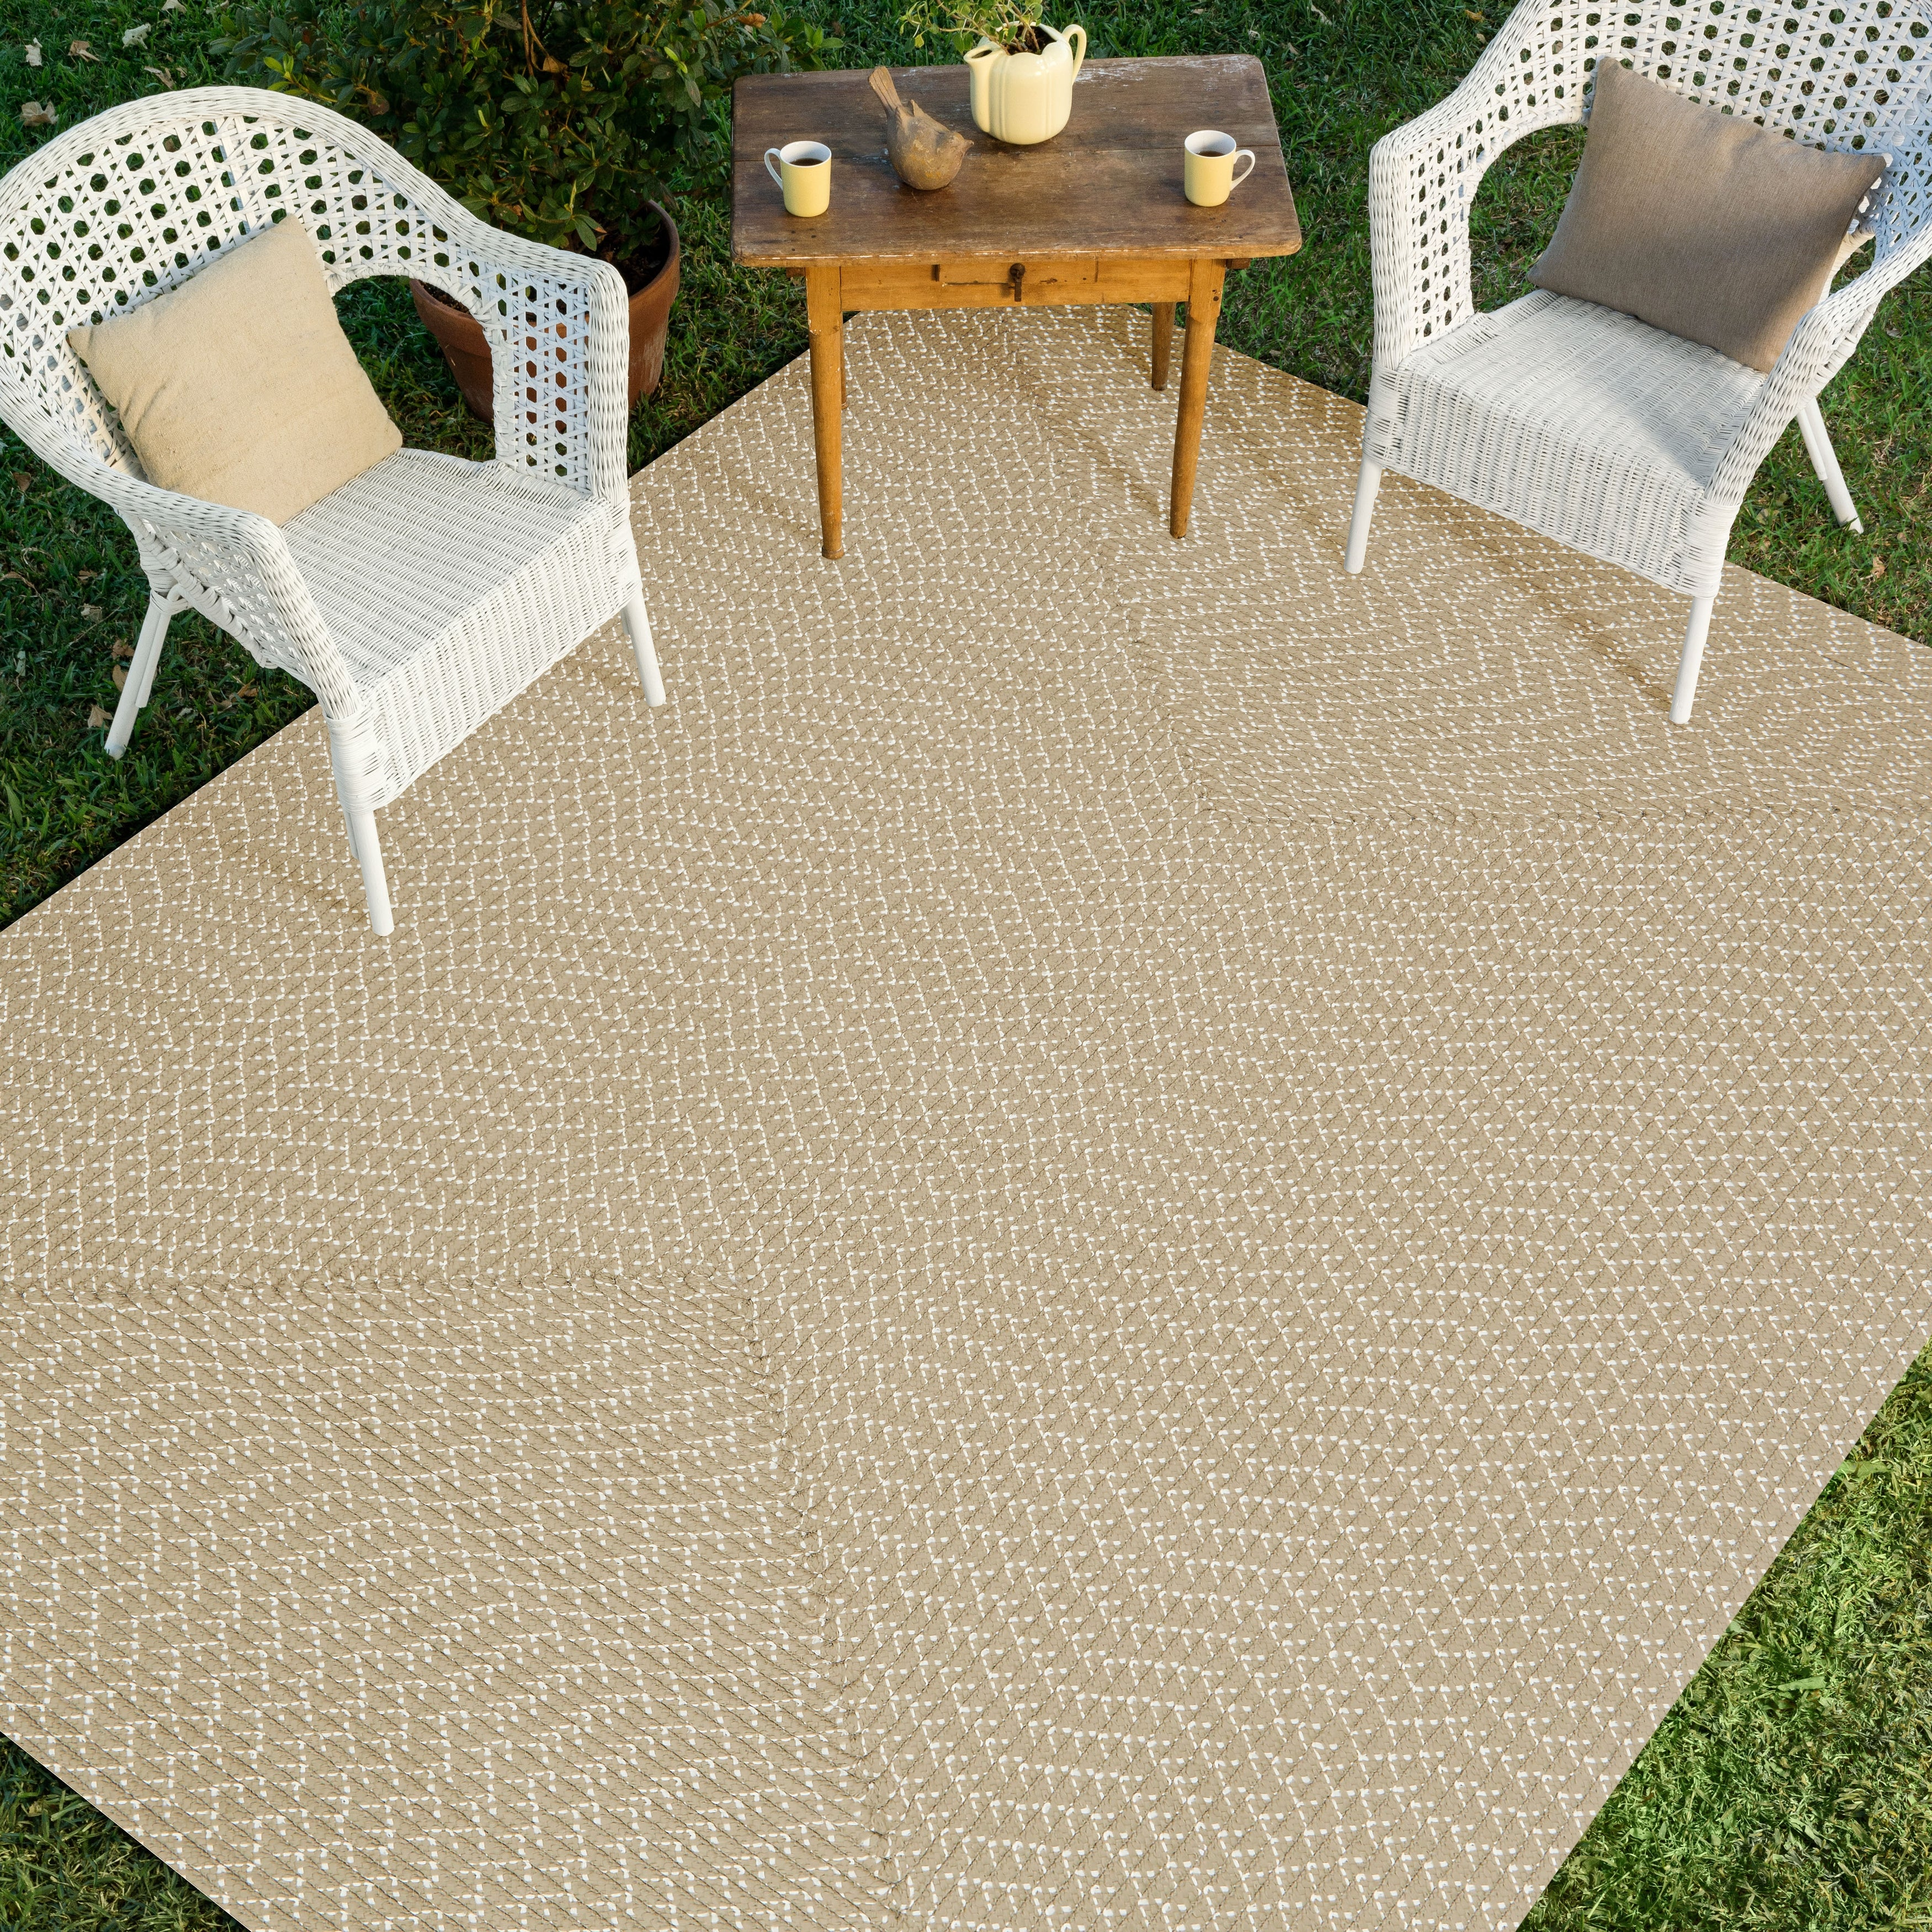 Hand Woven Rope Patio Area Rug